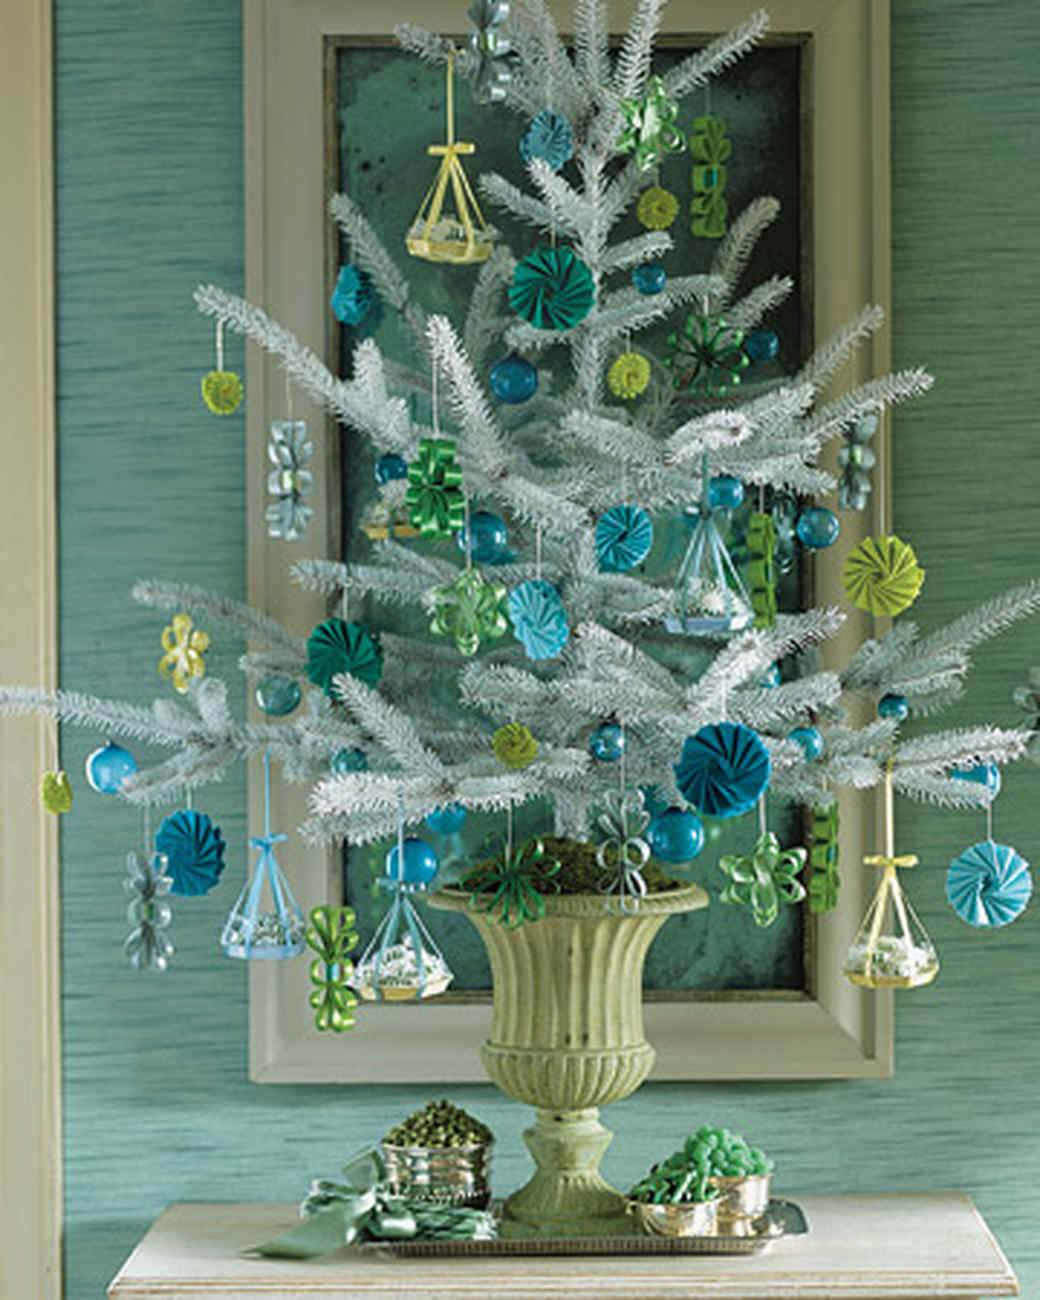 28 creative christmas tree decorating ideas martha stewart - Frosty Blue Christmas Decorations